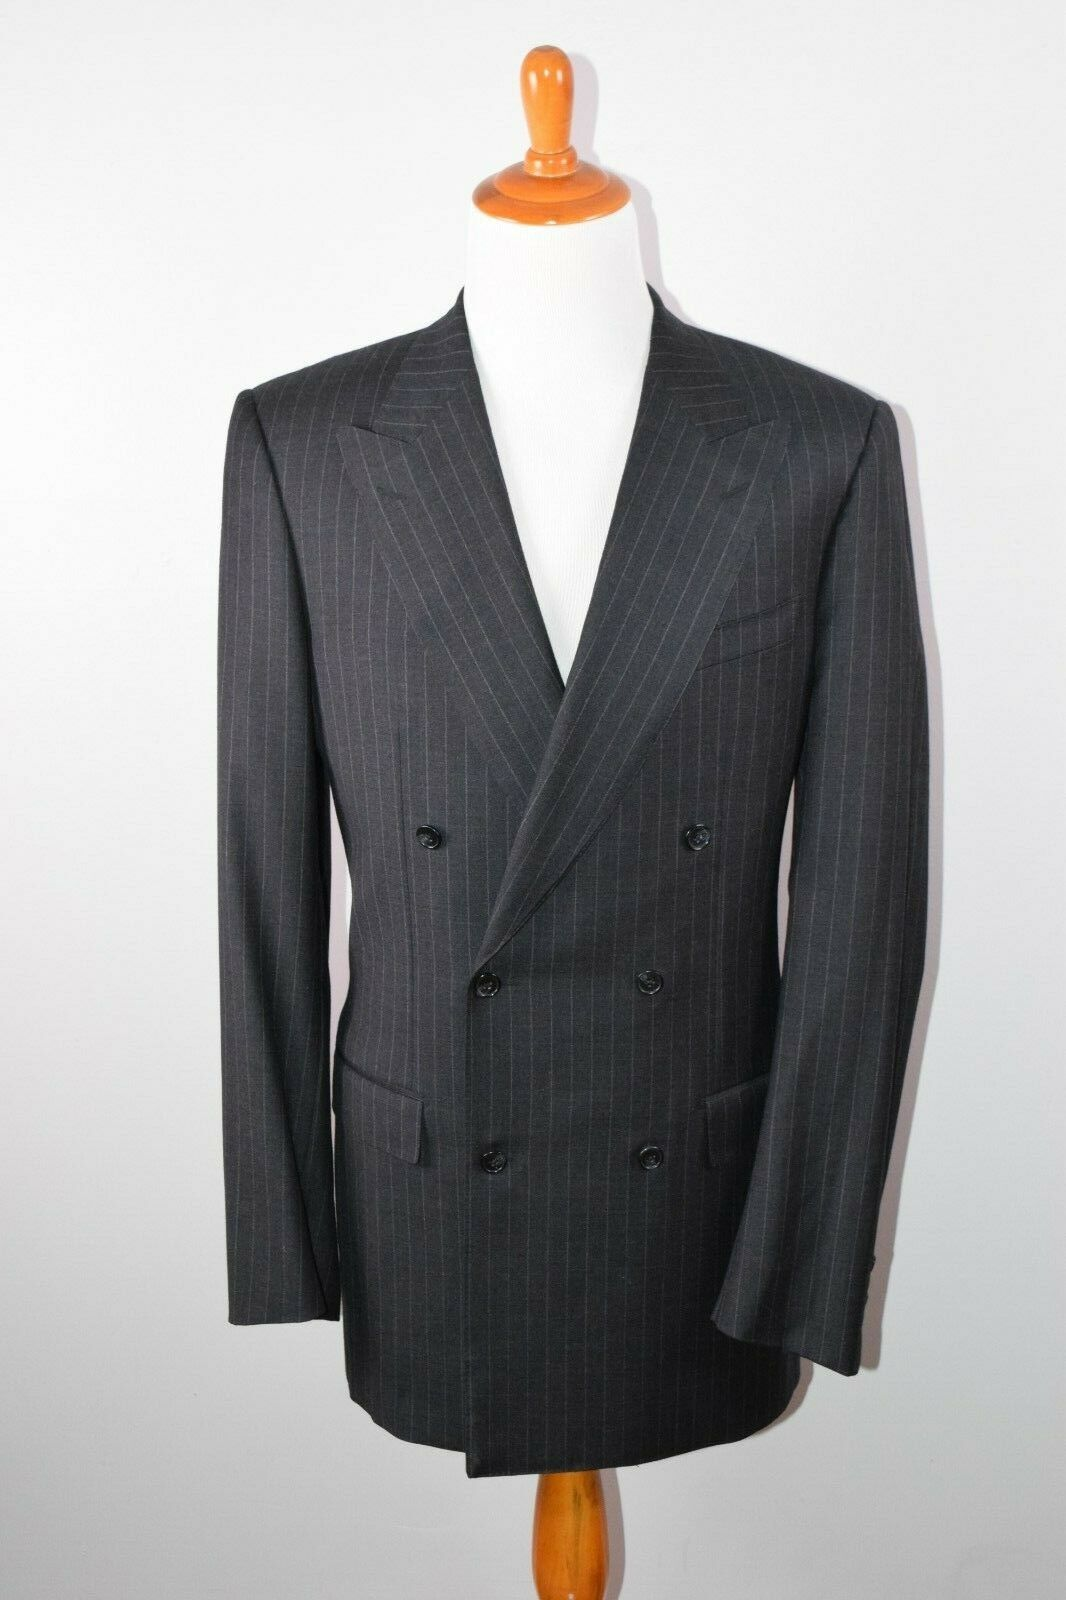 Ravazzolo Peak Lapel Double Breasted Charcoal Pinstripe Suit 44L W33x35 Luxe